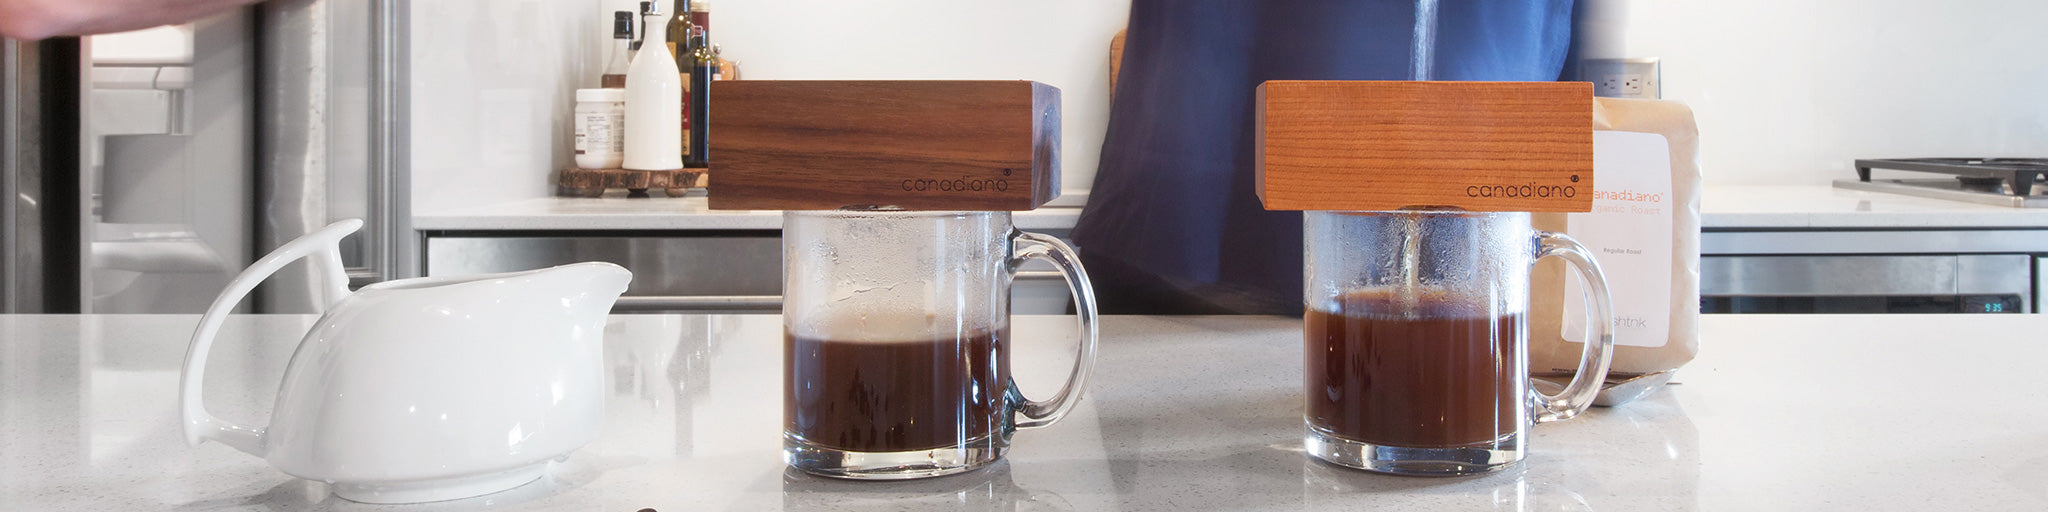 canadiano coffee maker